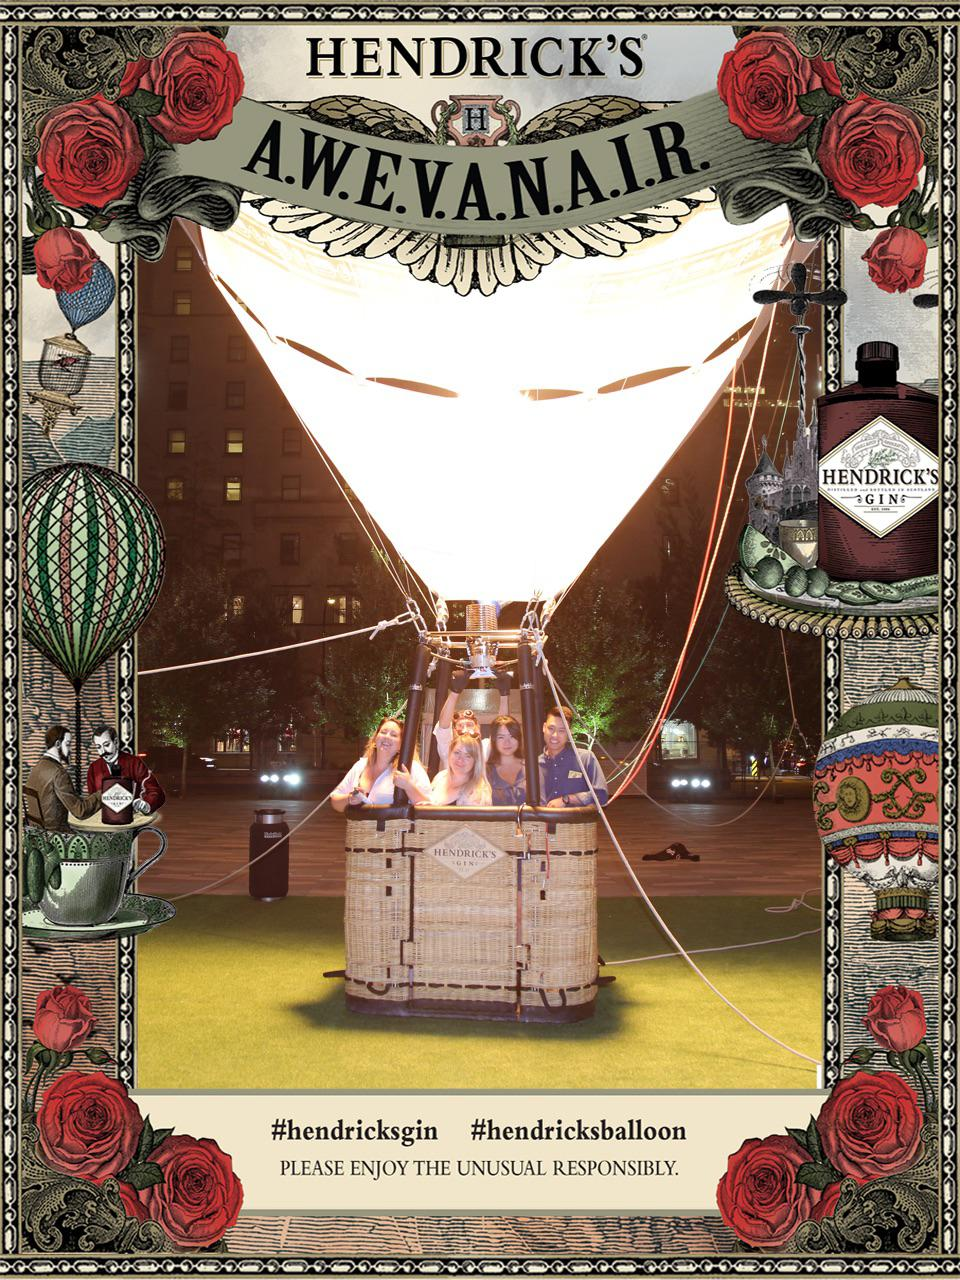 Hendrick's Gin debuts 65-foot A.W.E.V.A.N.A.I.R. hot air balloon.